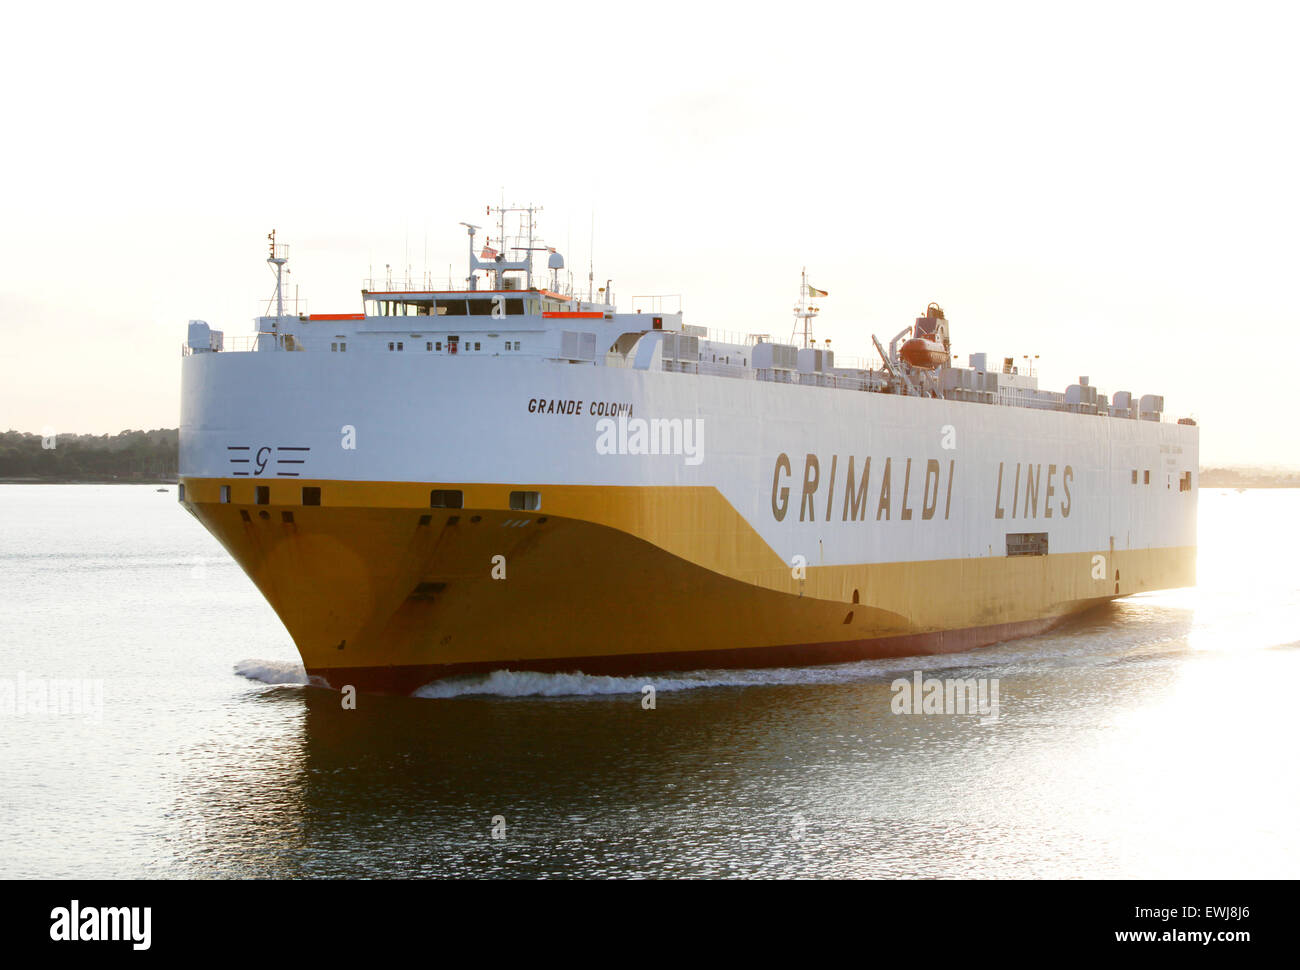 Grimaldi Lines navire transporteur de voiture Grande Colonia photographié quittant Southampton Docks Photo Stock